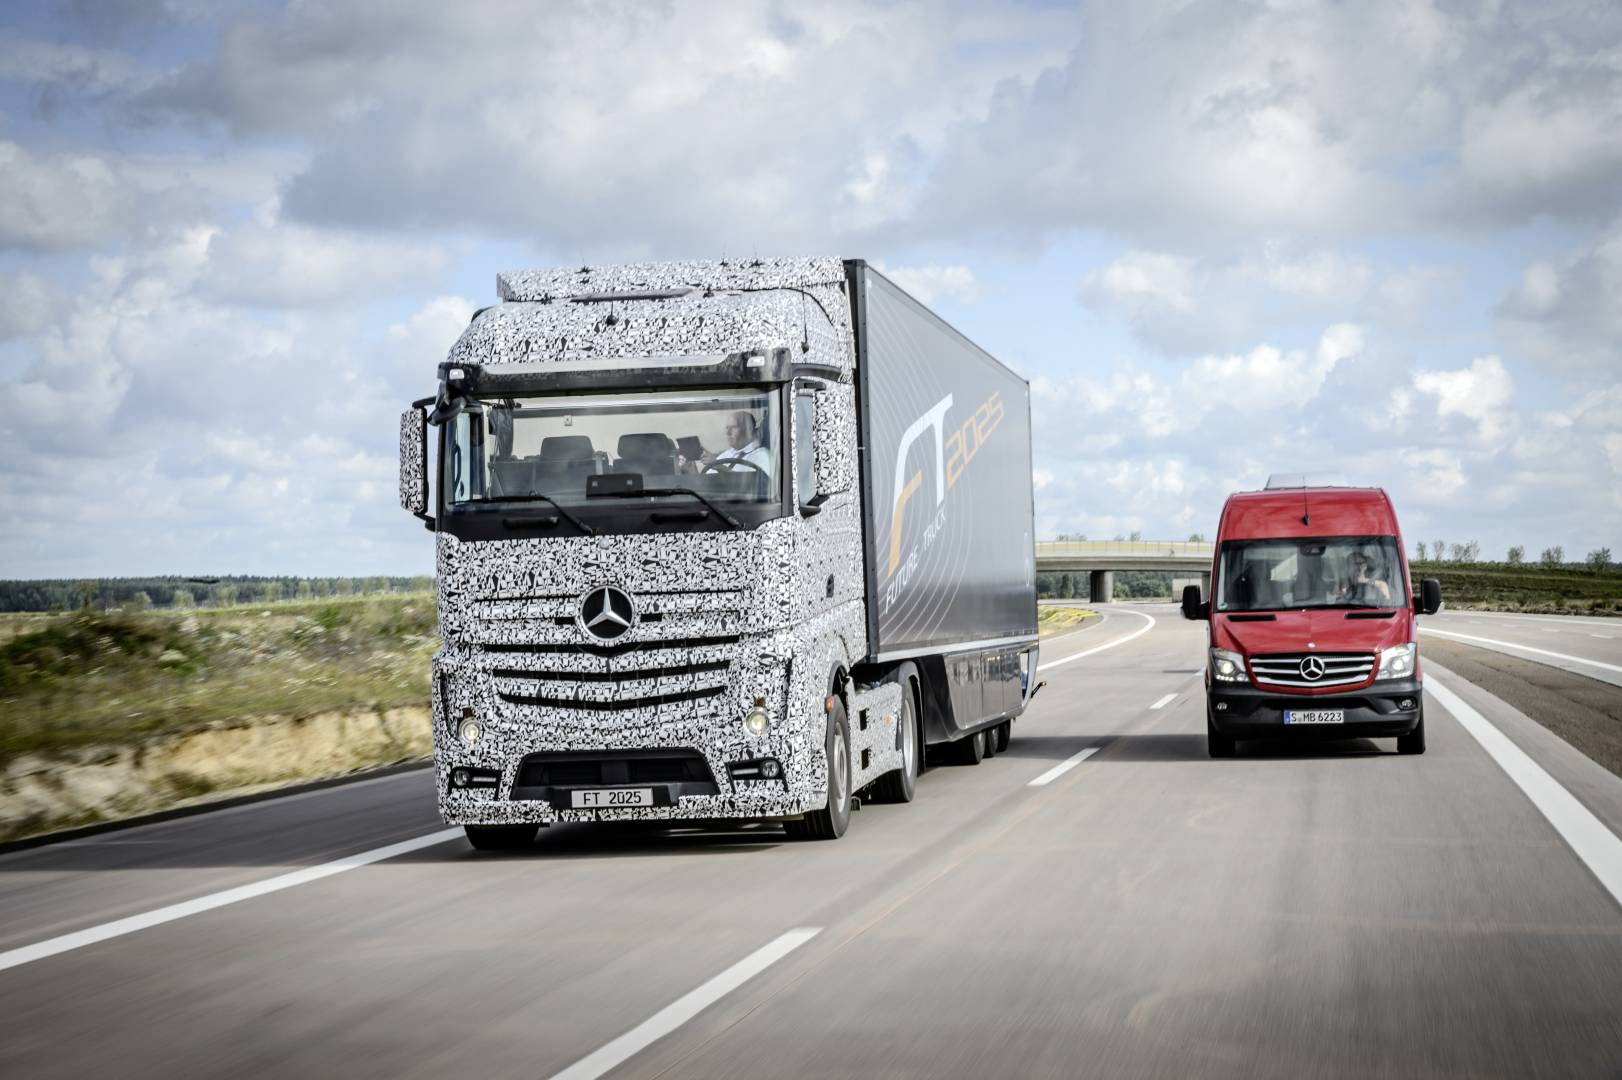 Future Truck 2025 is a self-driving truck that Mercedes-Benz claims could hit motorways within the next decade.